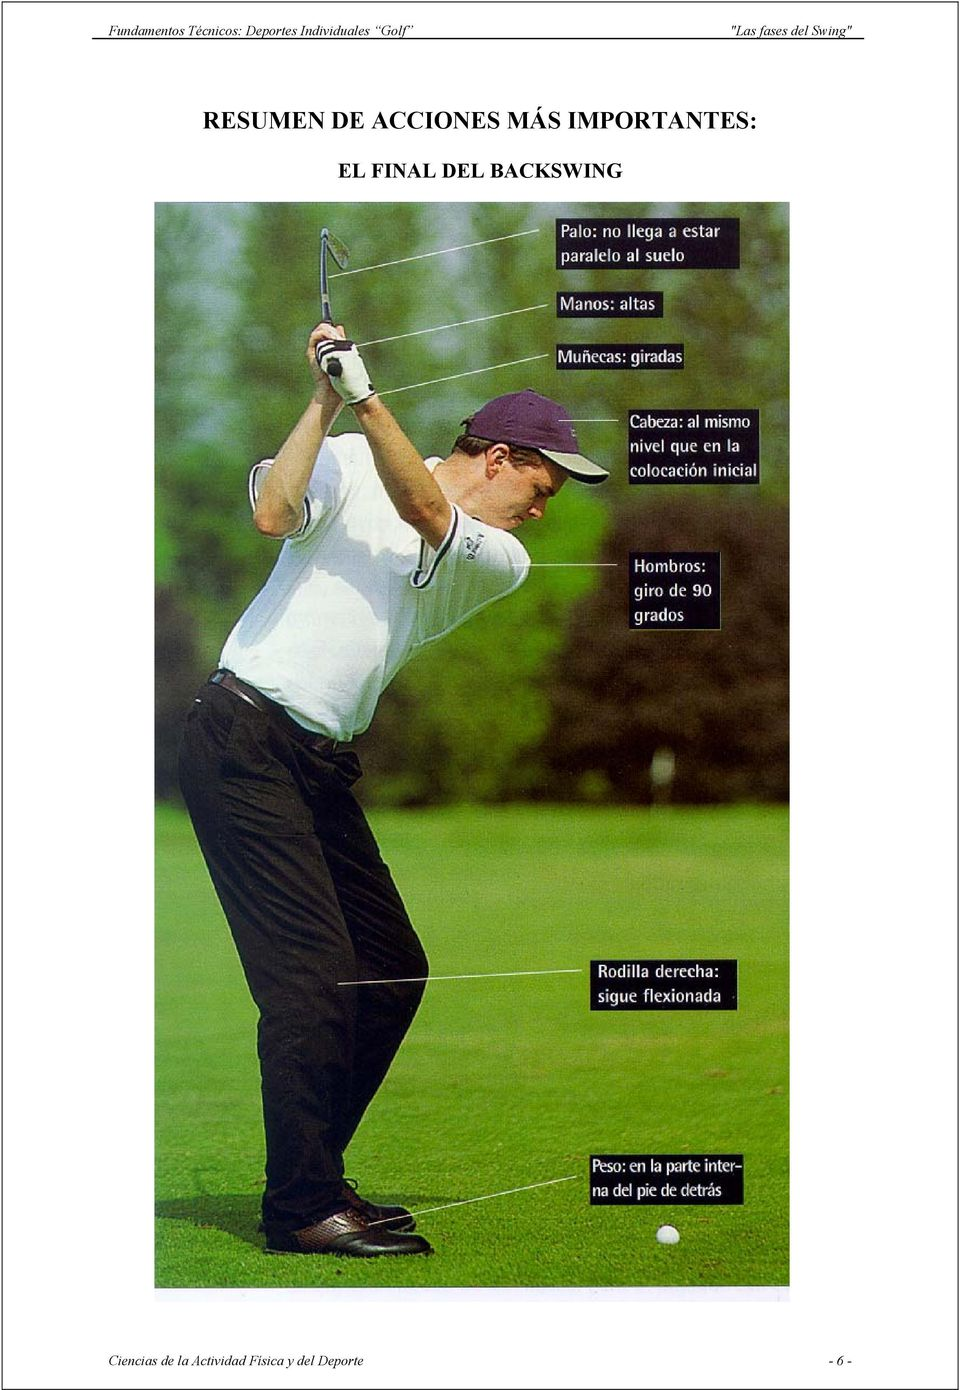 BACKSWING Ciencias de la